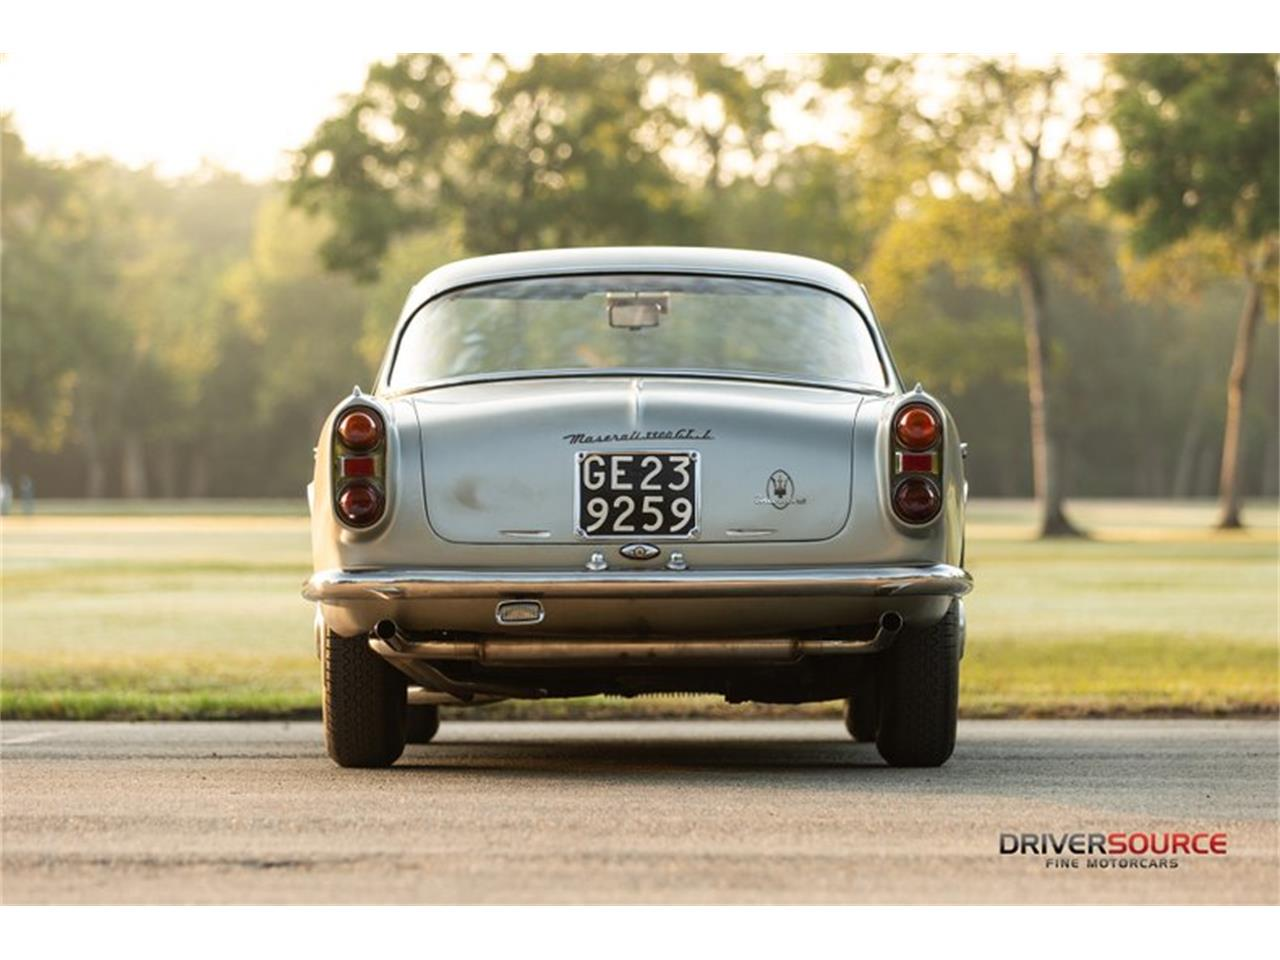 Large Picture of Classic '62 Maserati 3500 located in Houston Texas - $278,500.00 Offered by Driversource - OCR7